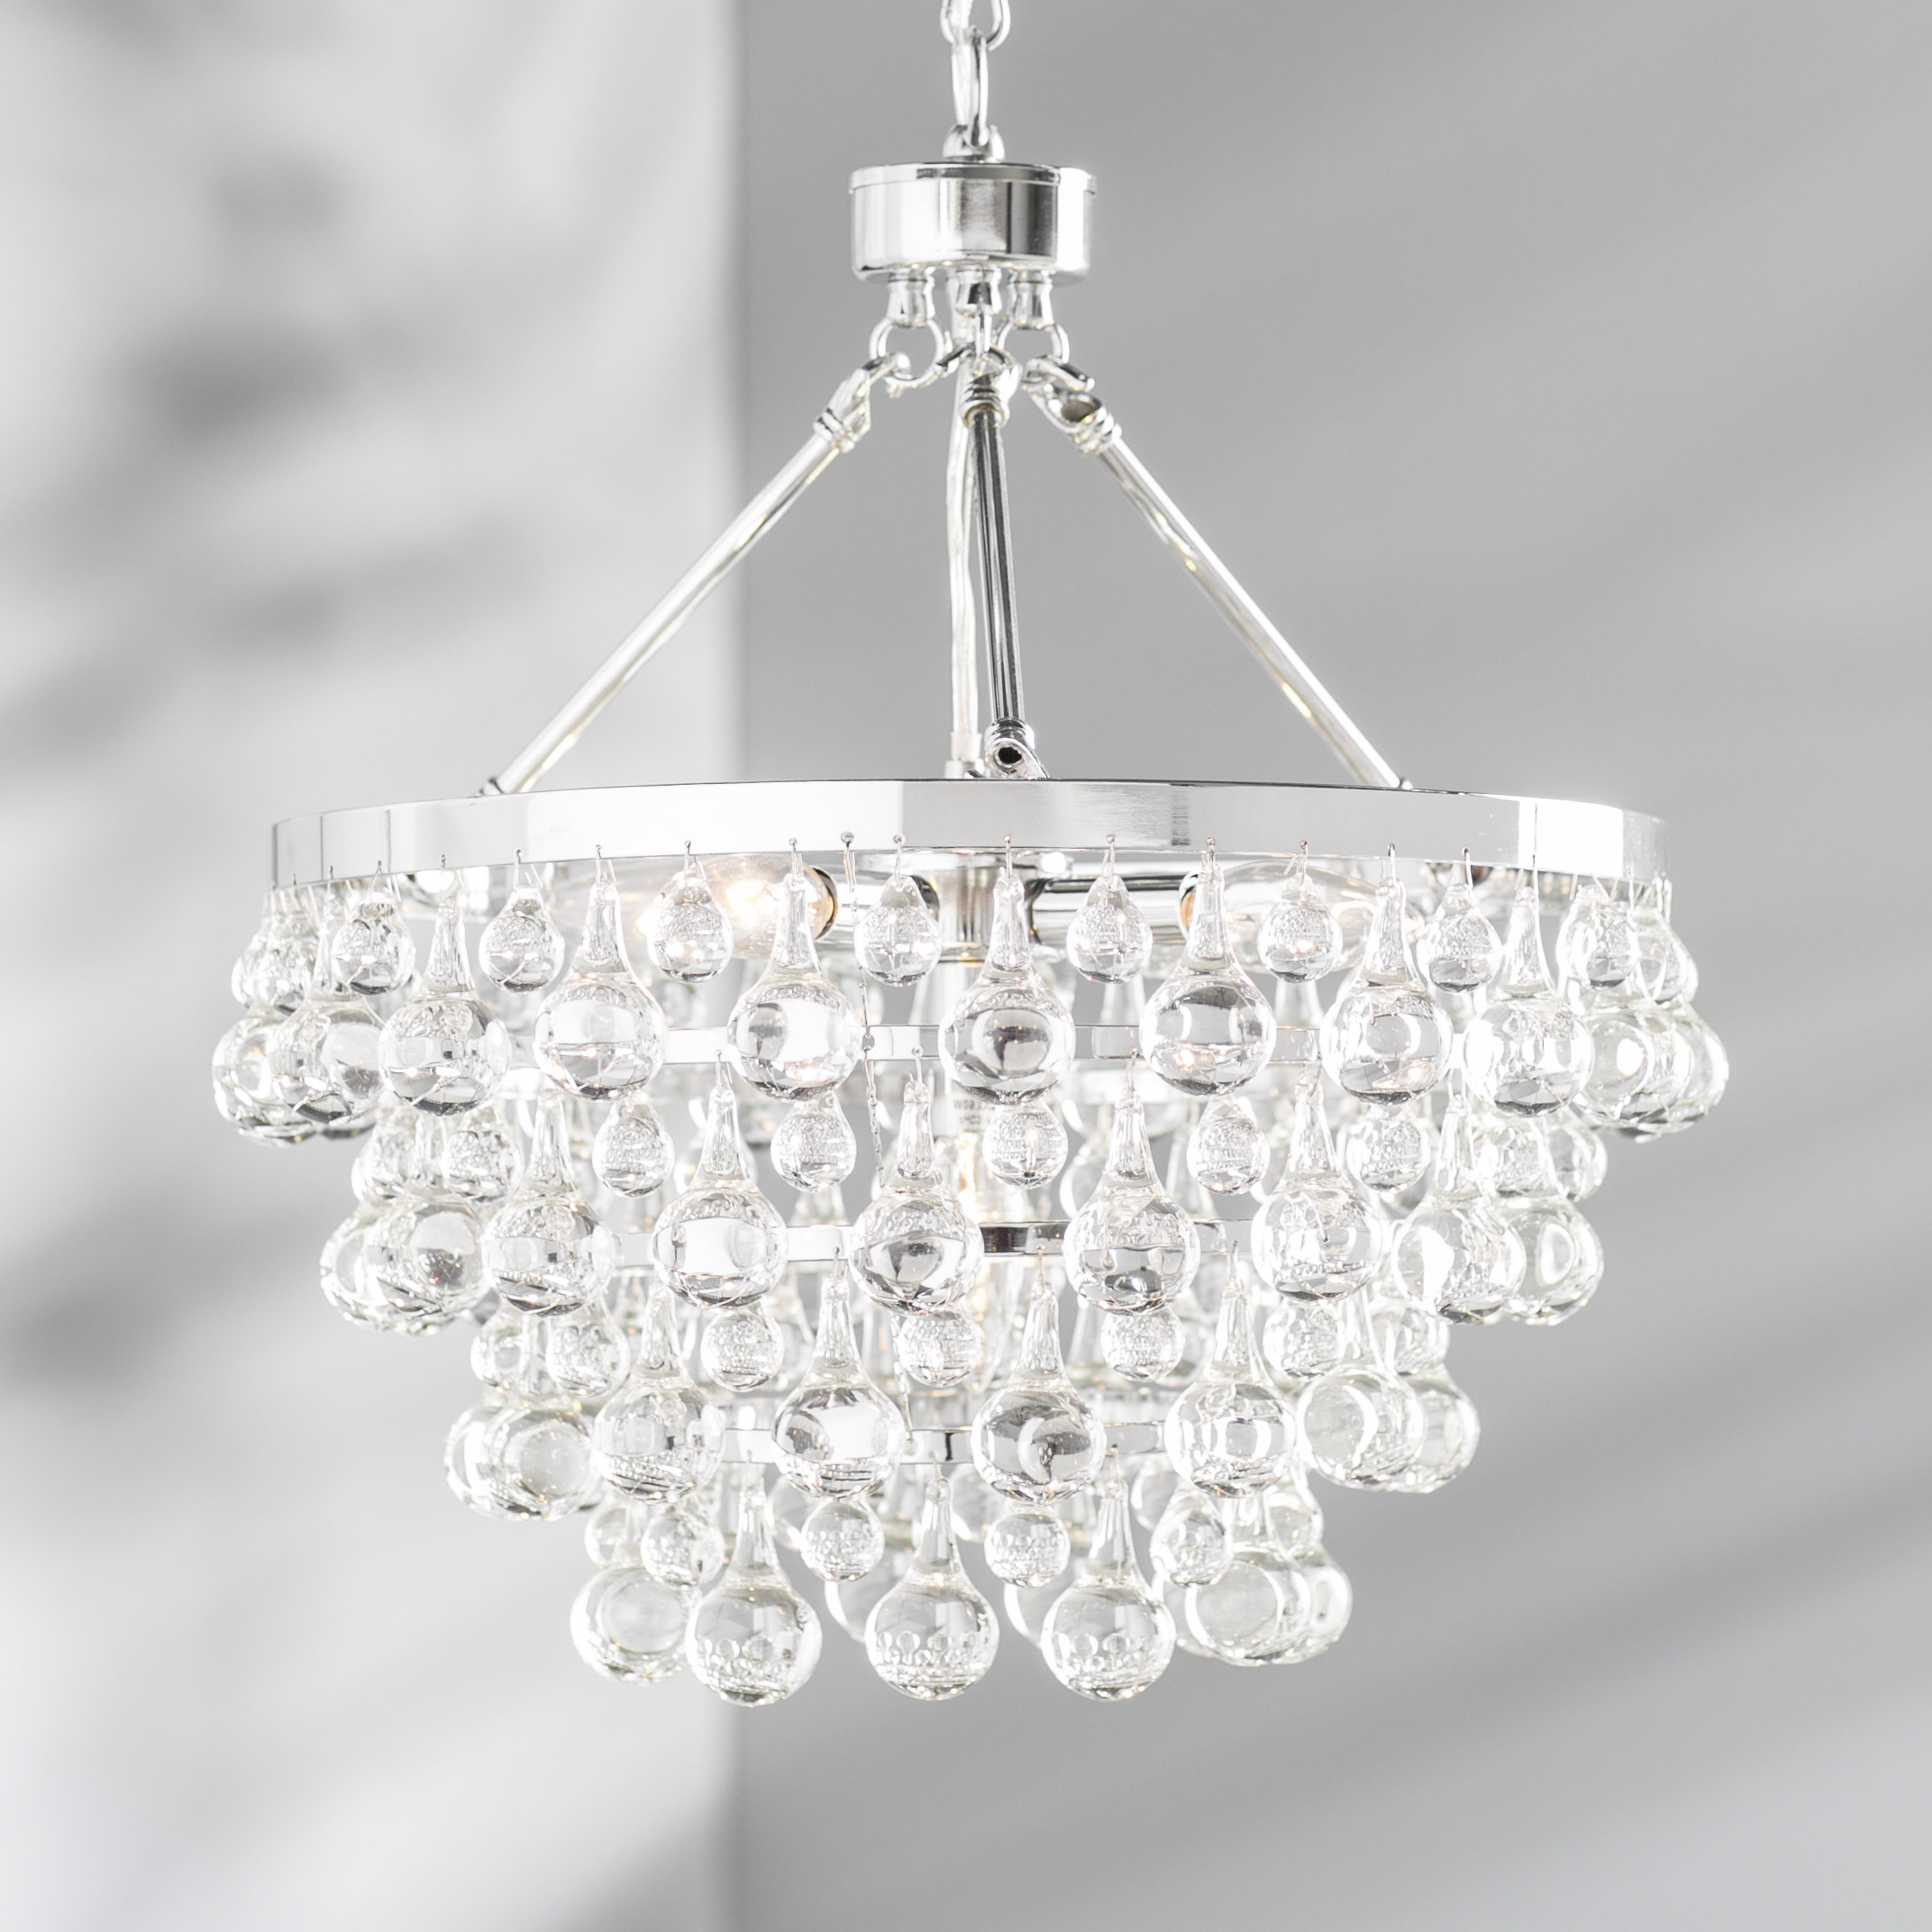 Ladonna 5 Light Novelty Chandeliers Inside Recent Willa Arlo Interiors Ahern 5 Light Crystal Chandelier (View 21 of 25)